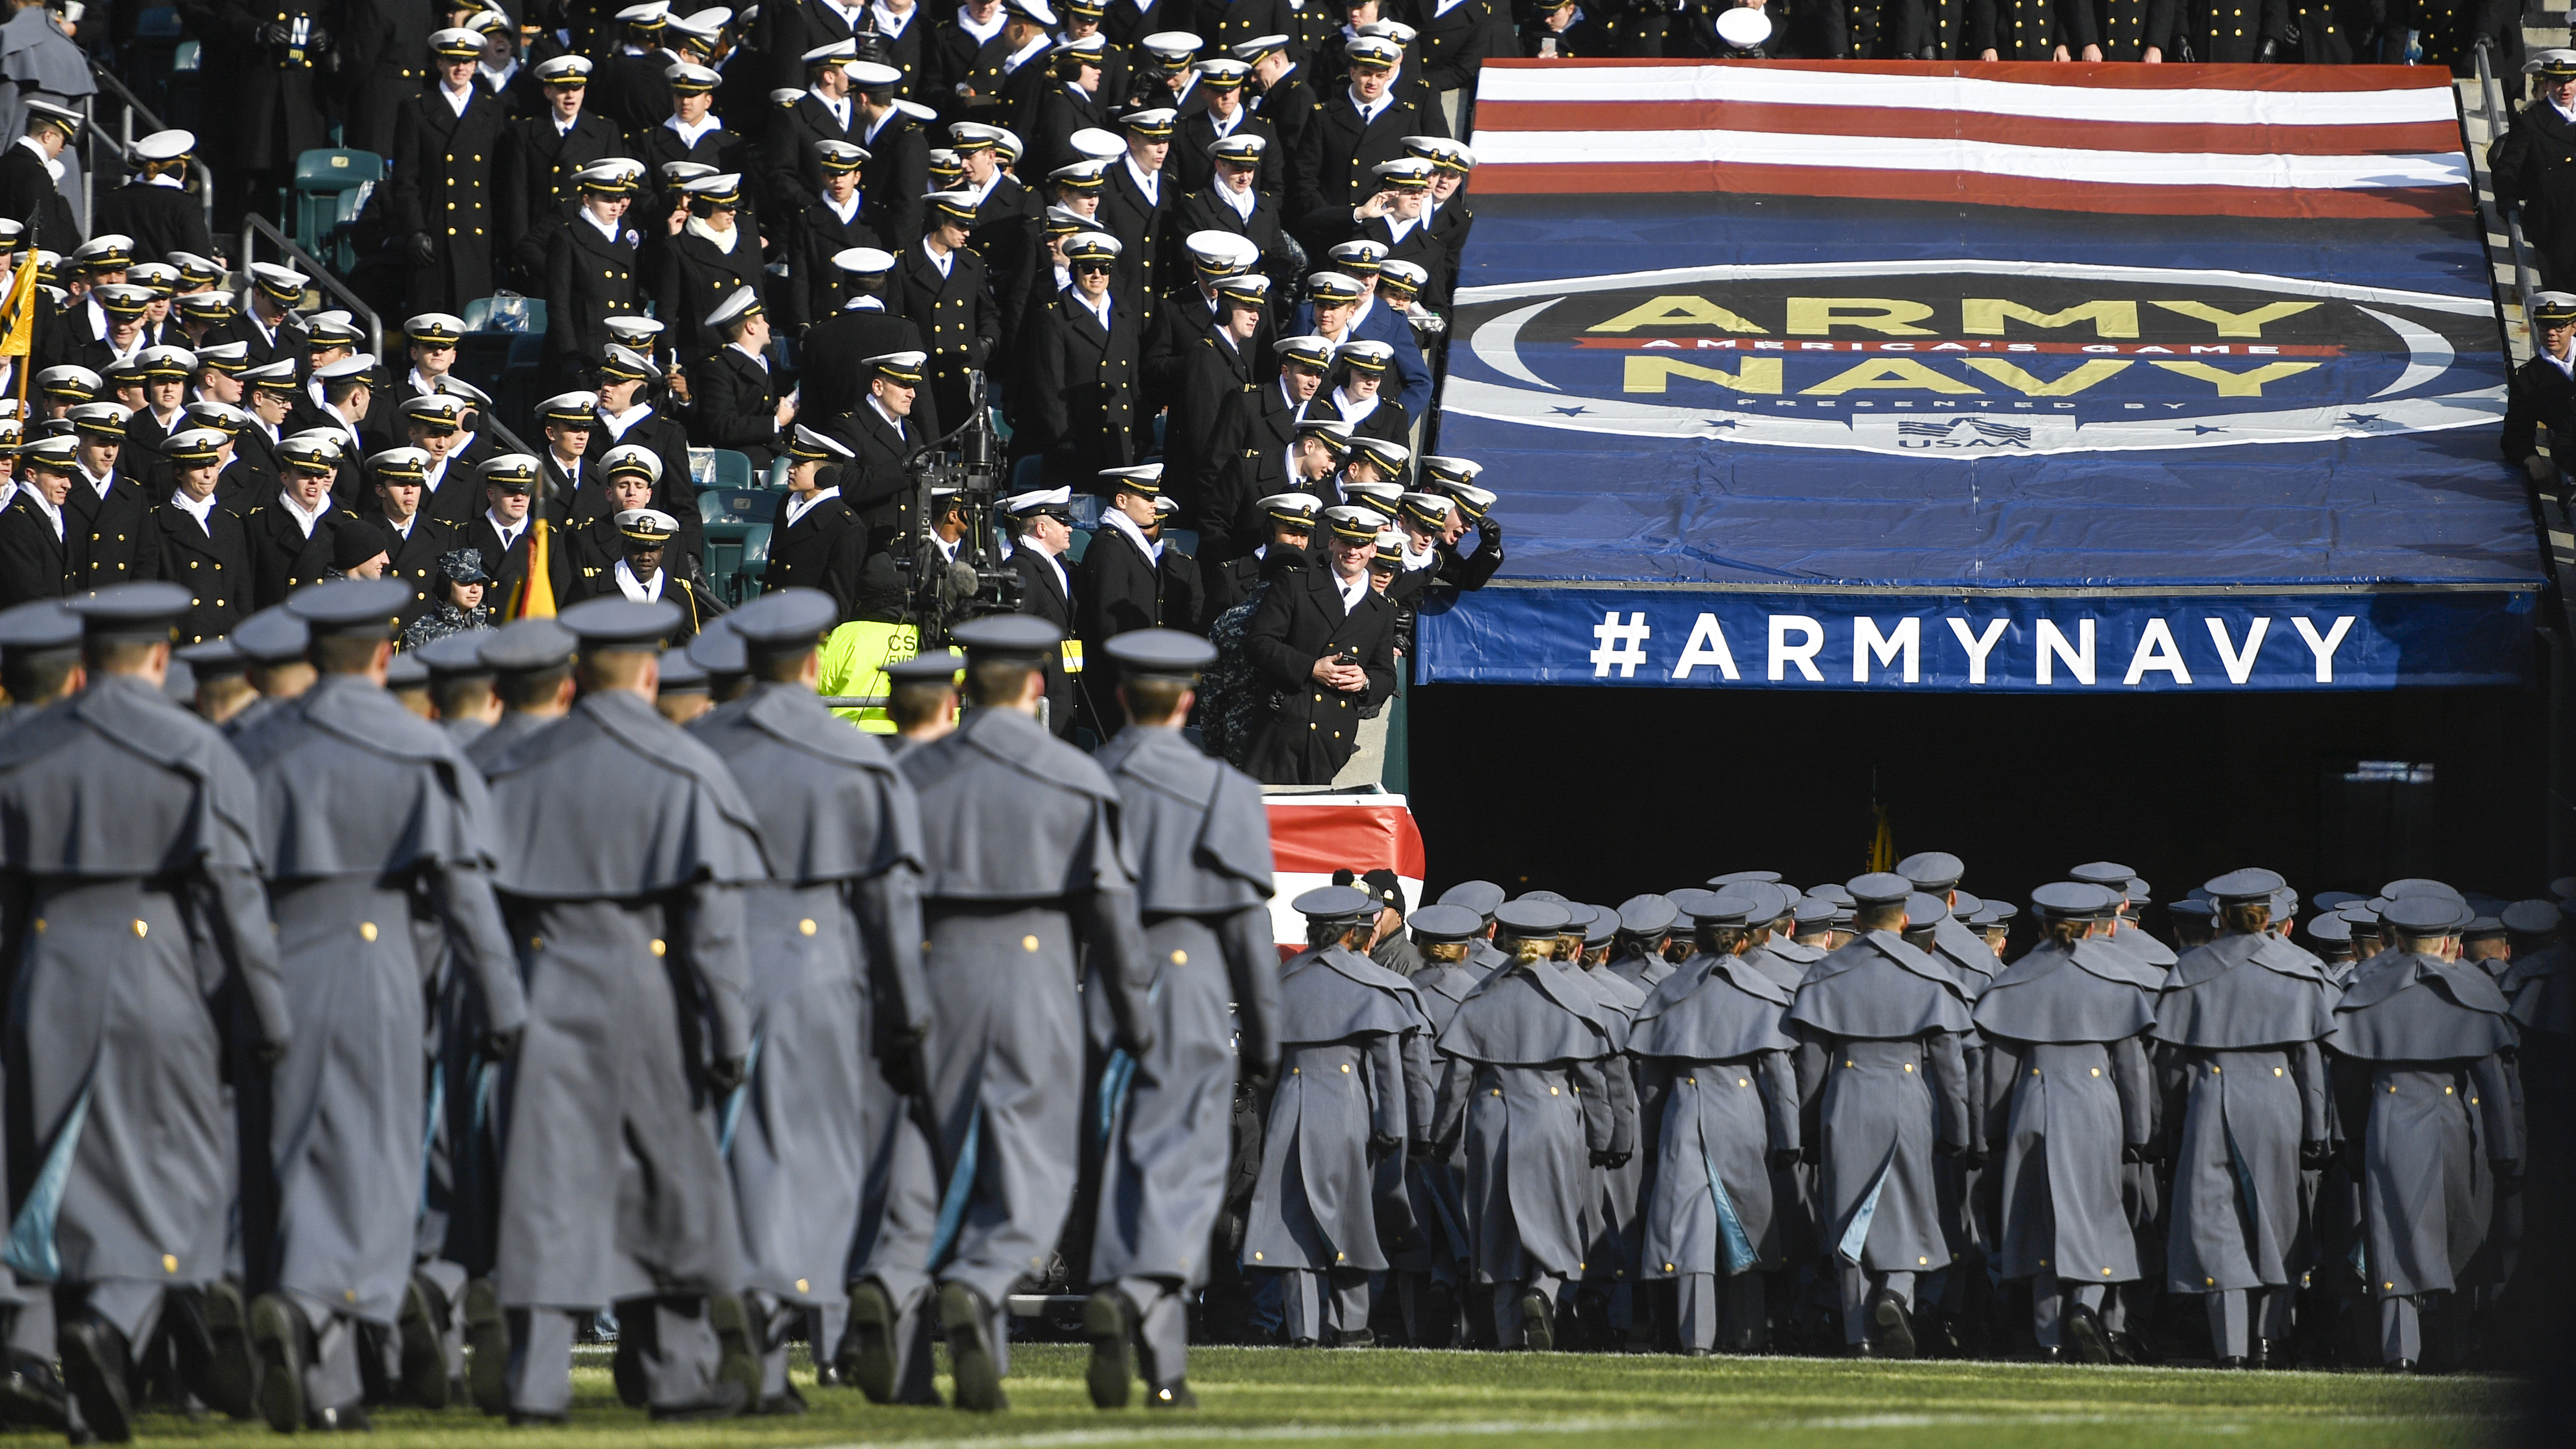 Navy Cadets taunt Army Cadets as they retreat from the field before the start of the game at Lincoln Financial Field on December 08, 2018 in Philadelphia, Pennsylvania. (Photo by Sarah Stier/Getty Images)